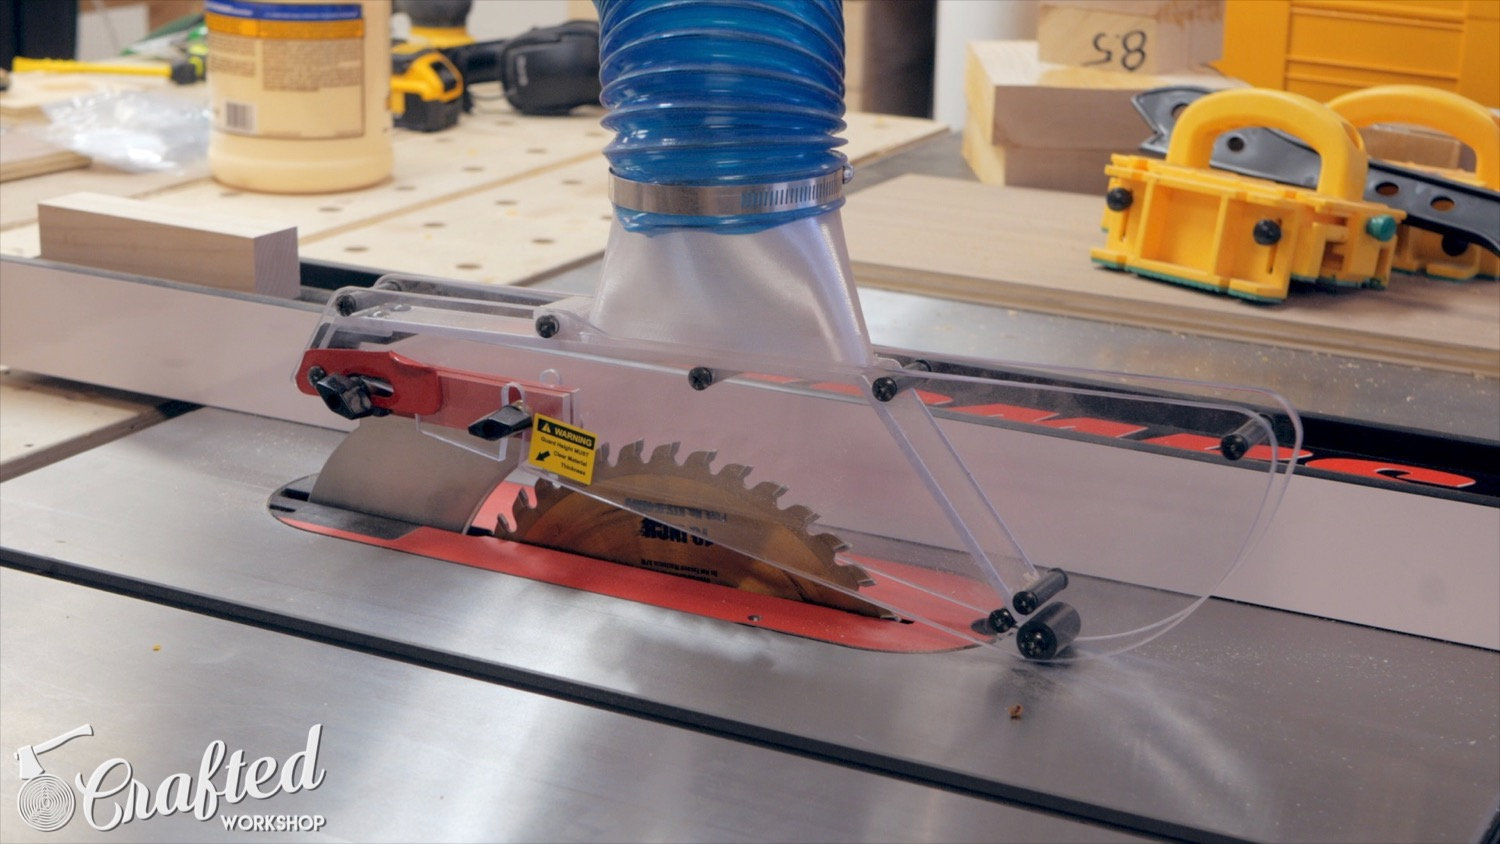 shark guard blade guard dust collection table saw